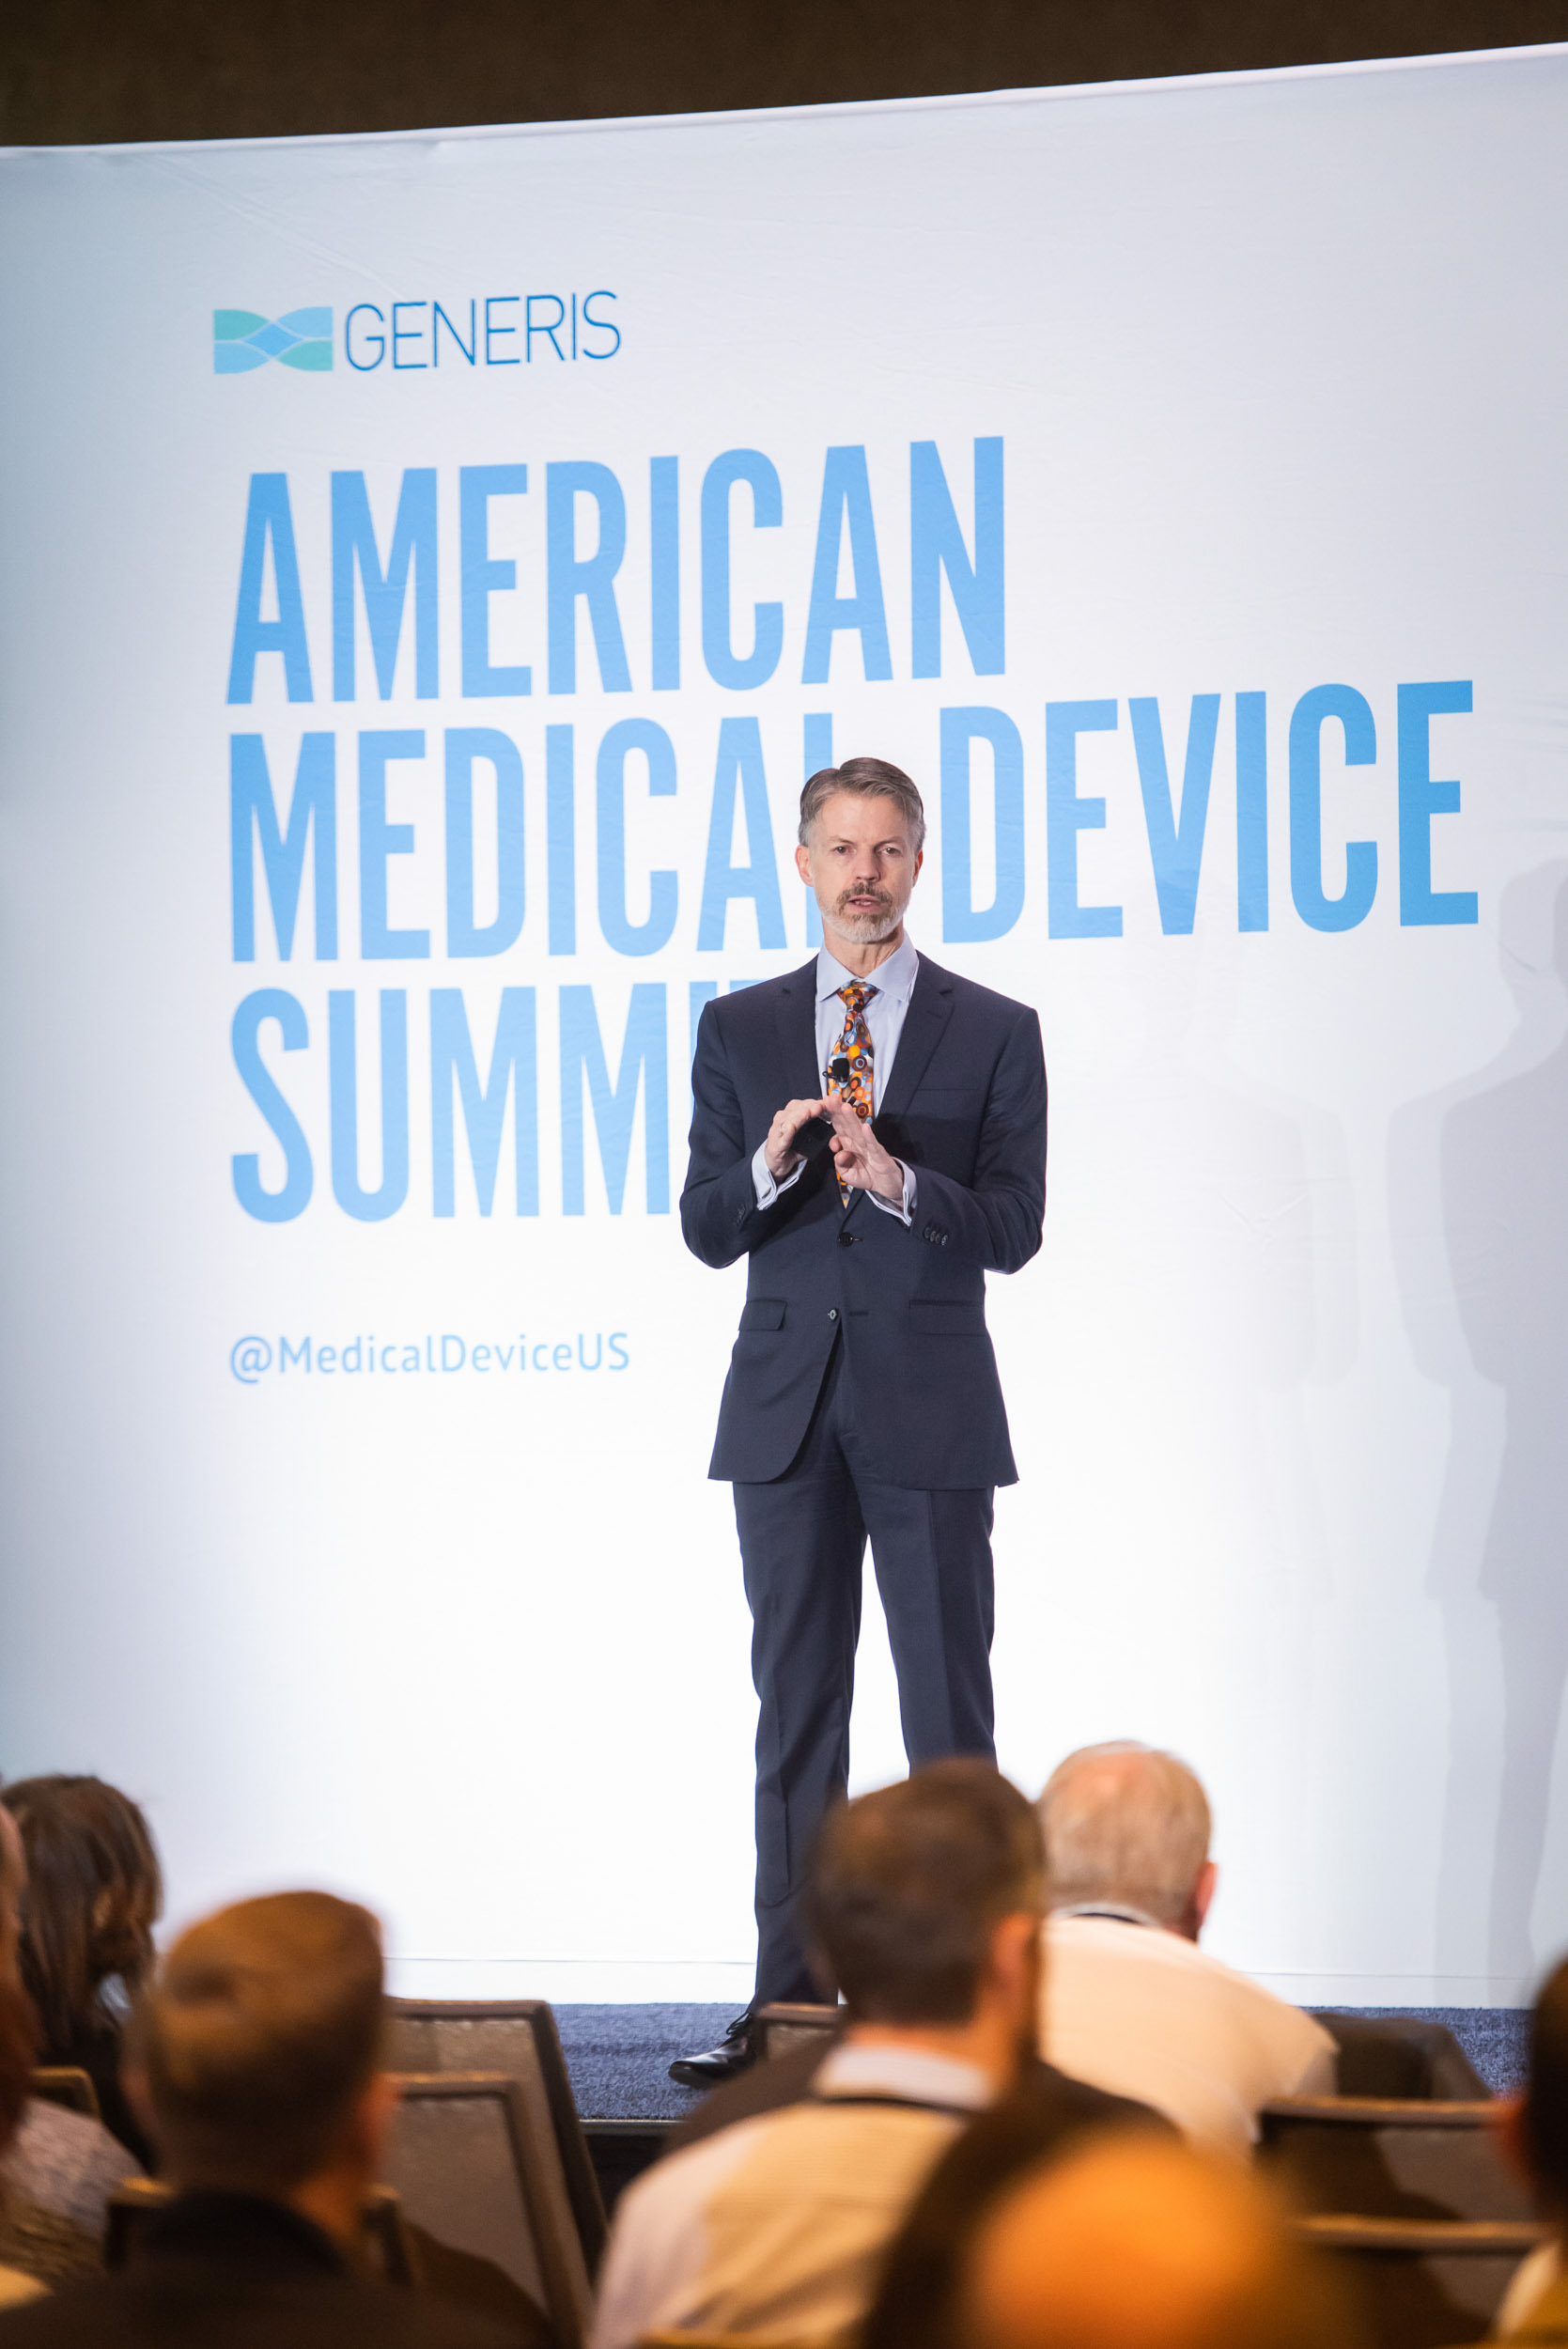 181024 - American Medical Device Summit - mark campbell photography-2_Resized_Resized.jpg